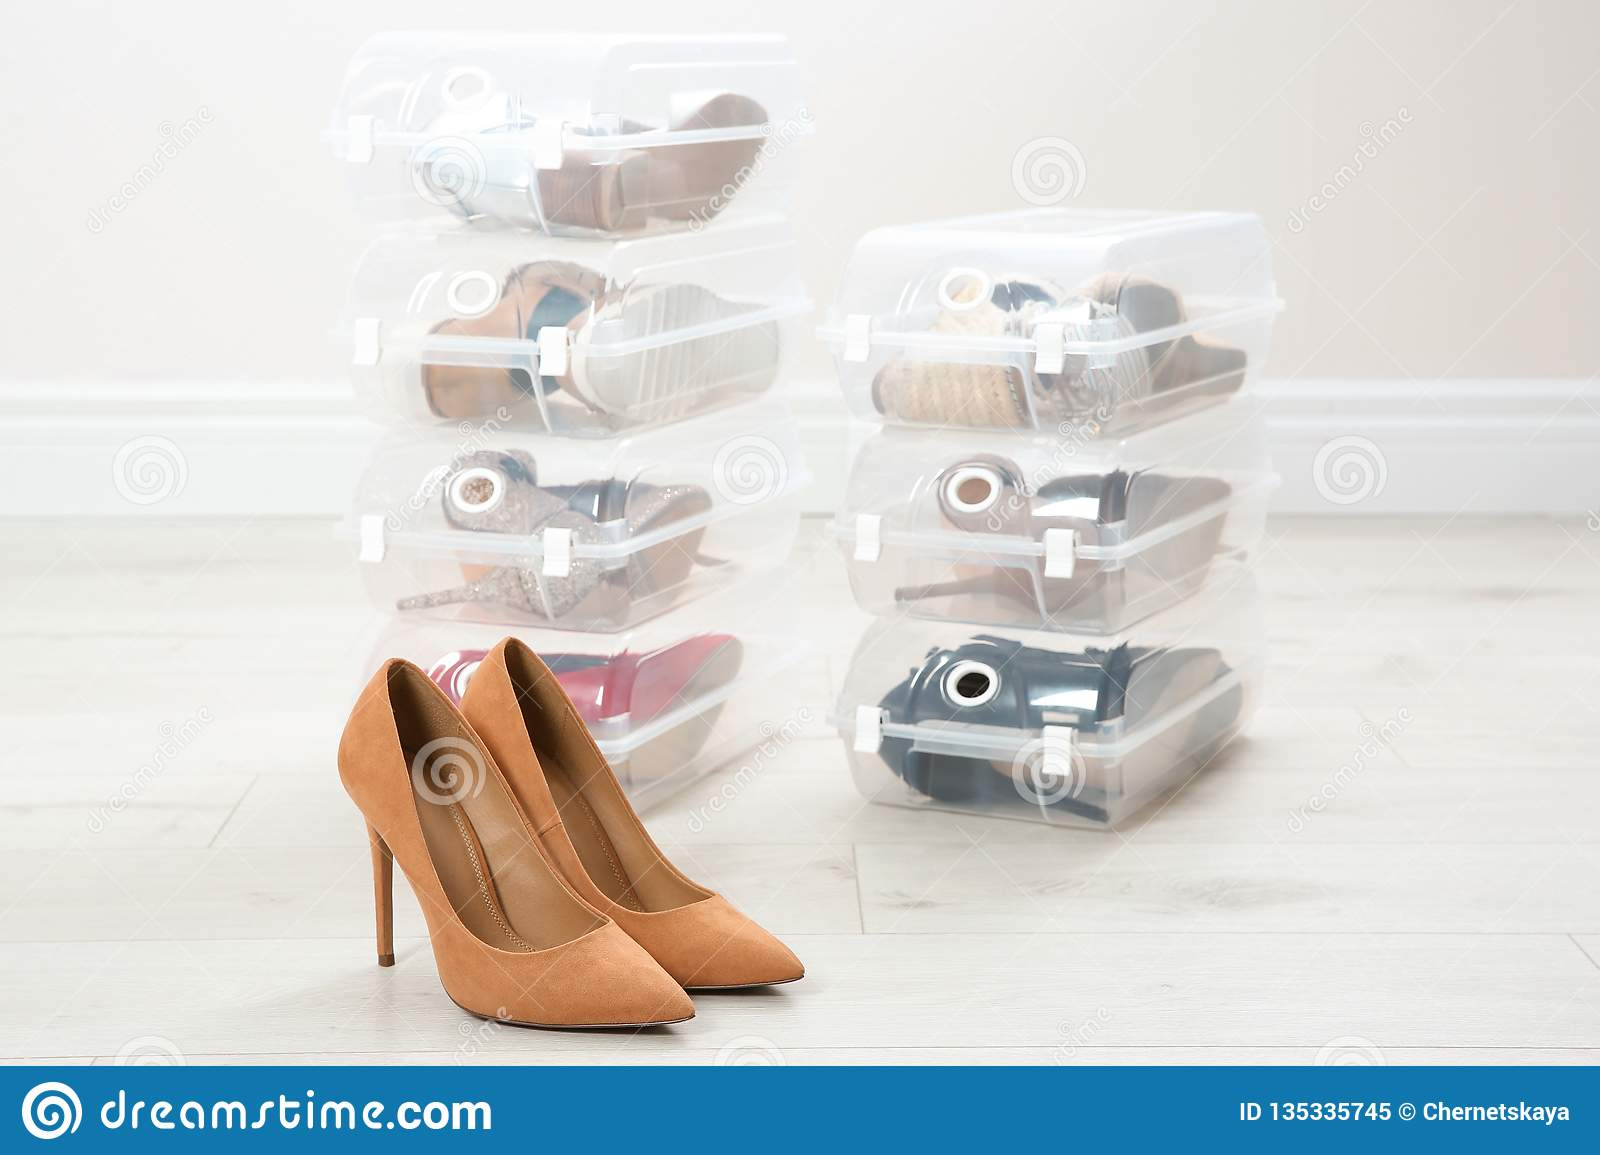 Pair of female shoes and other footwear in plastic boxes on floor.